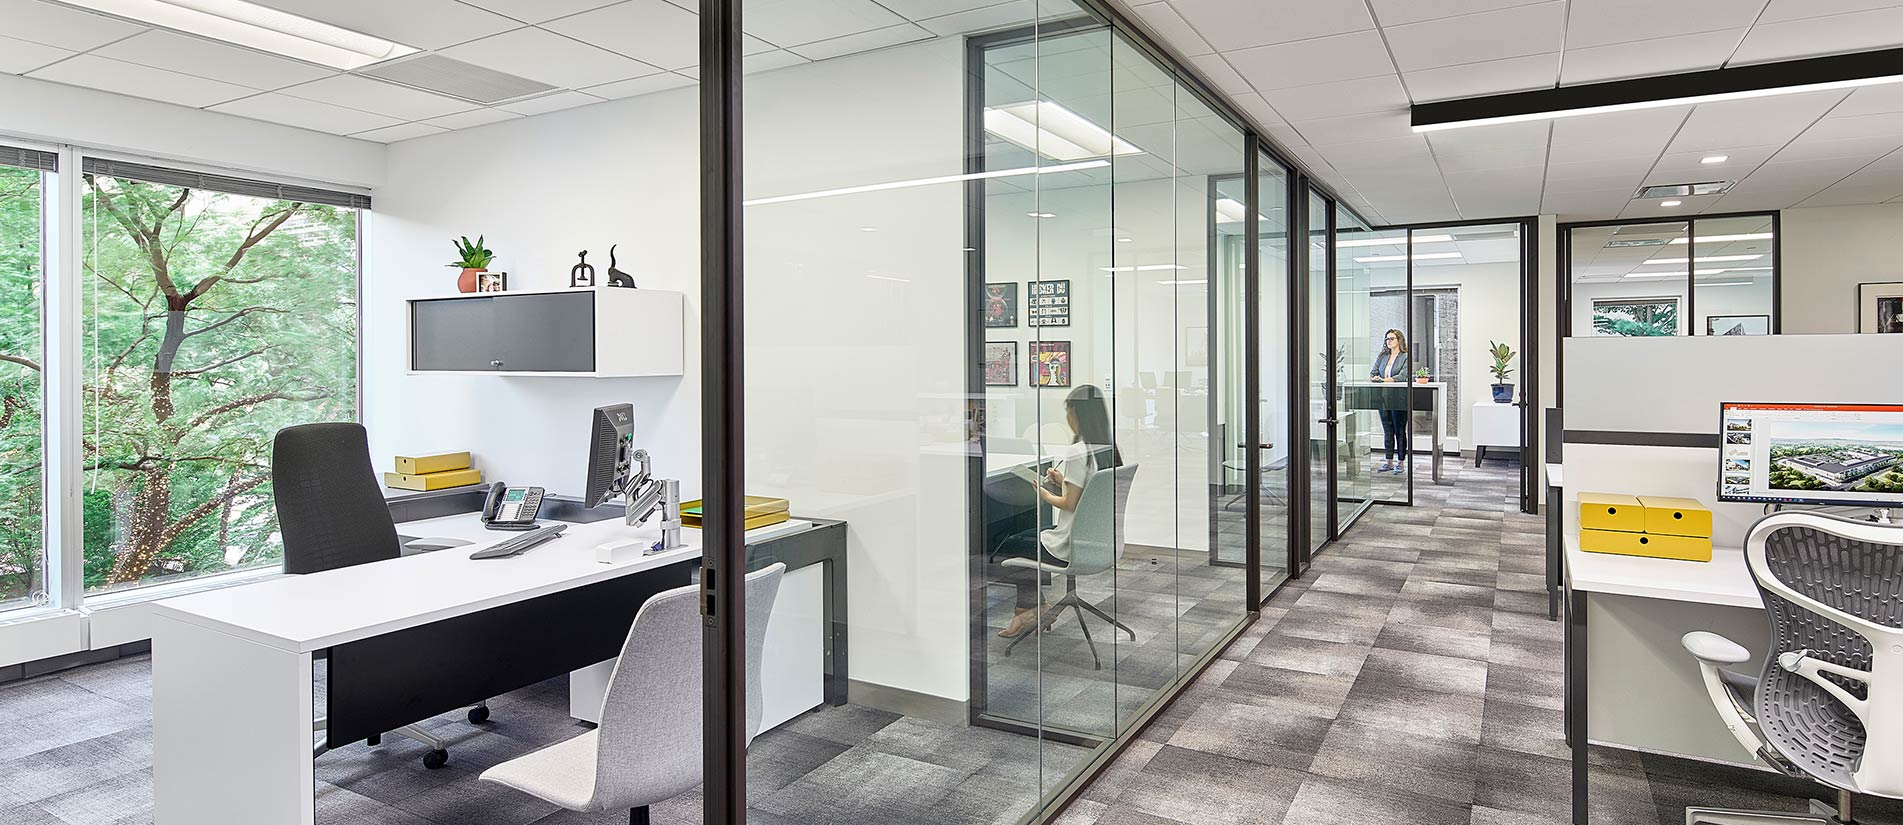 An office space divided into cubicles, conference rooms, and executive offices using Transwall One-LP movable partitions.